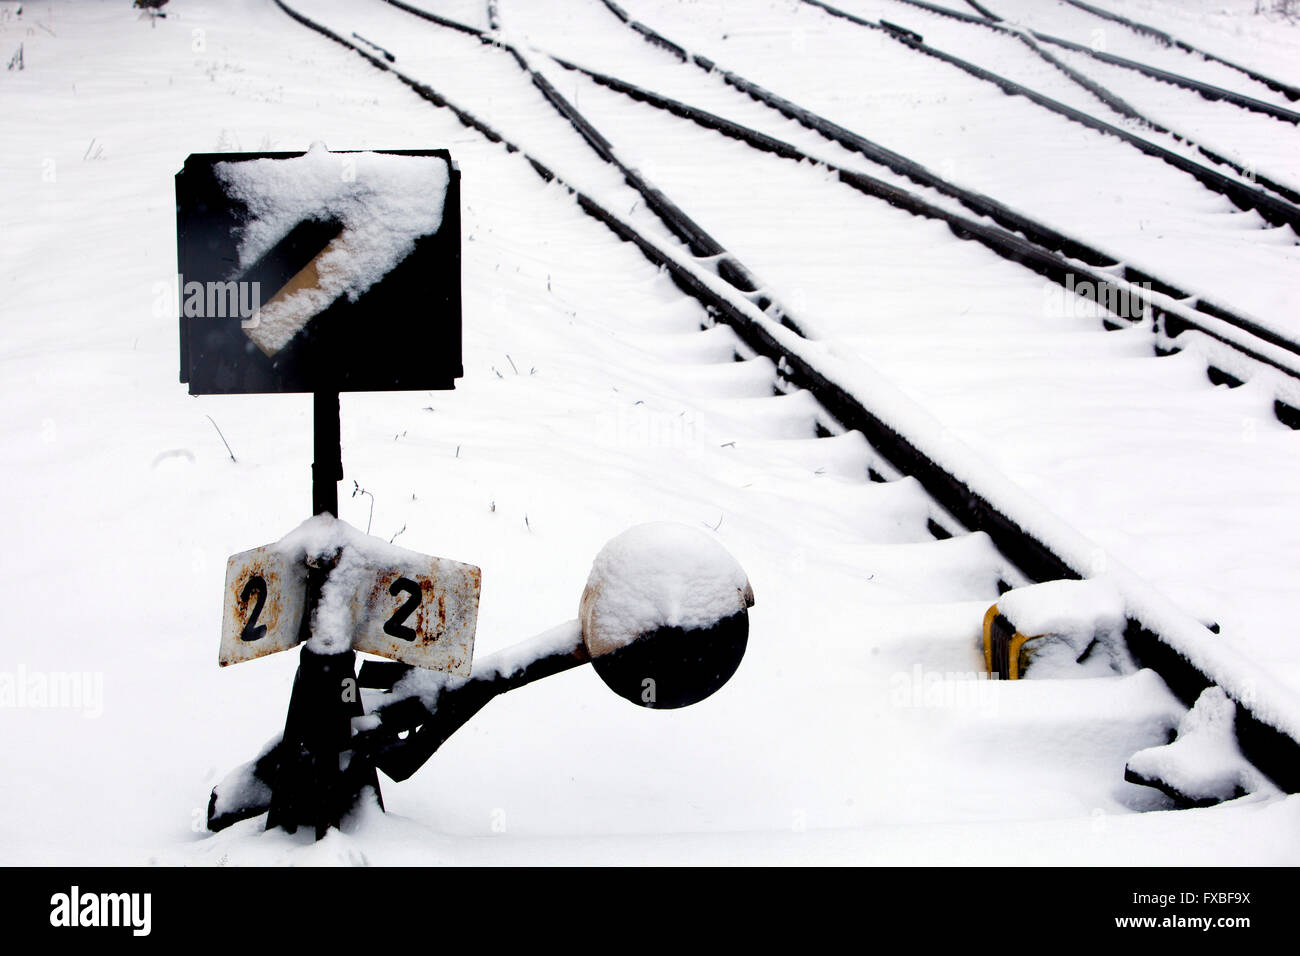 snowy railway track and turnout, Czech Republic - Stock Image